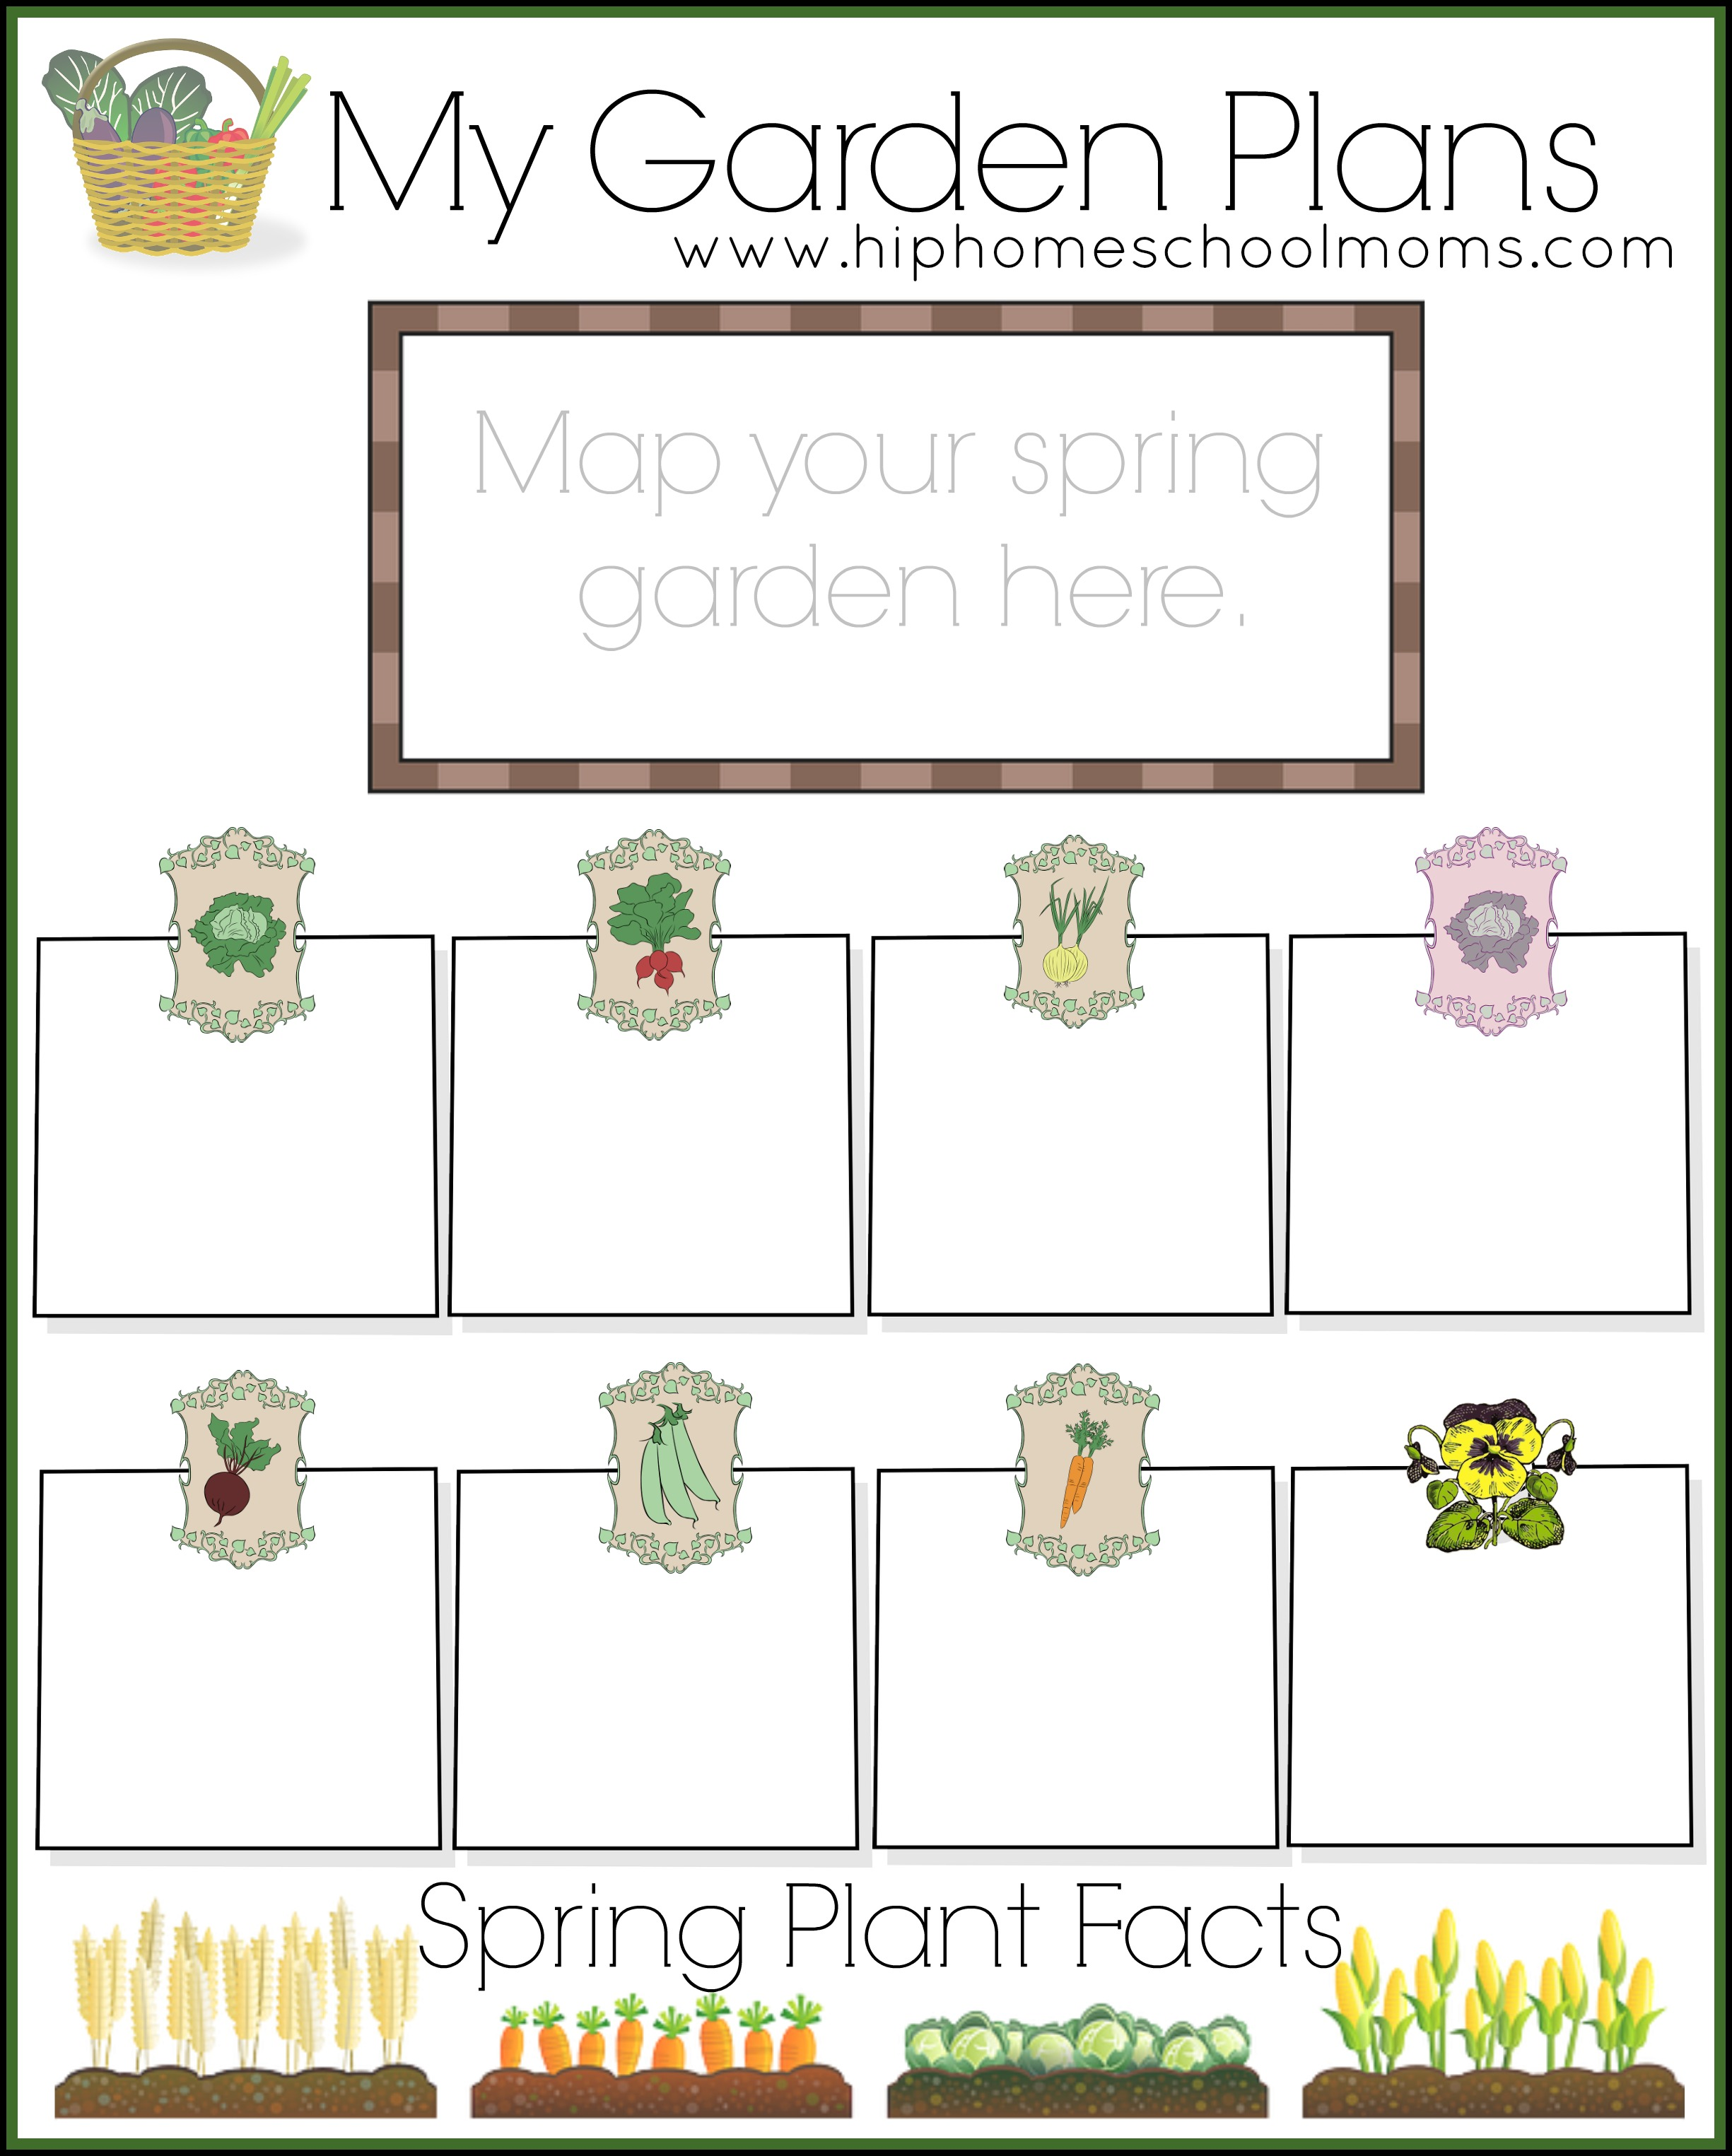 Free garden planner for kids hip homeschool moms for Home and garden planner